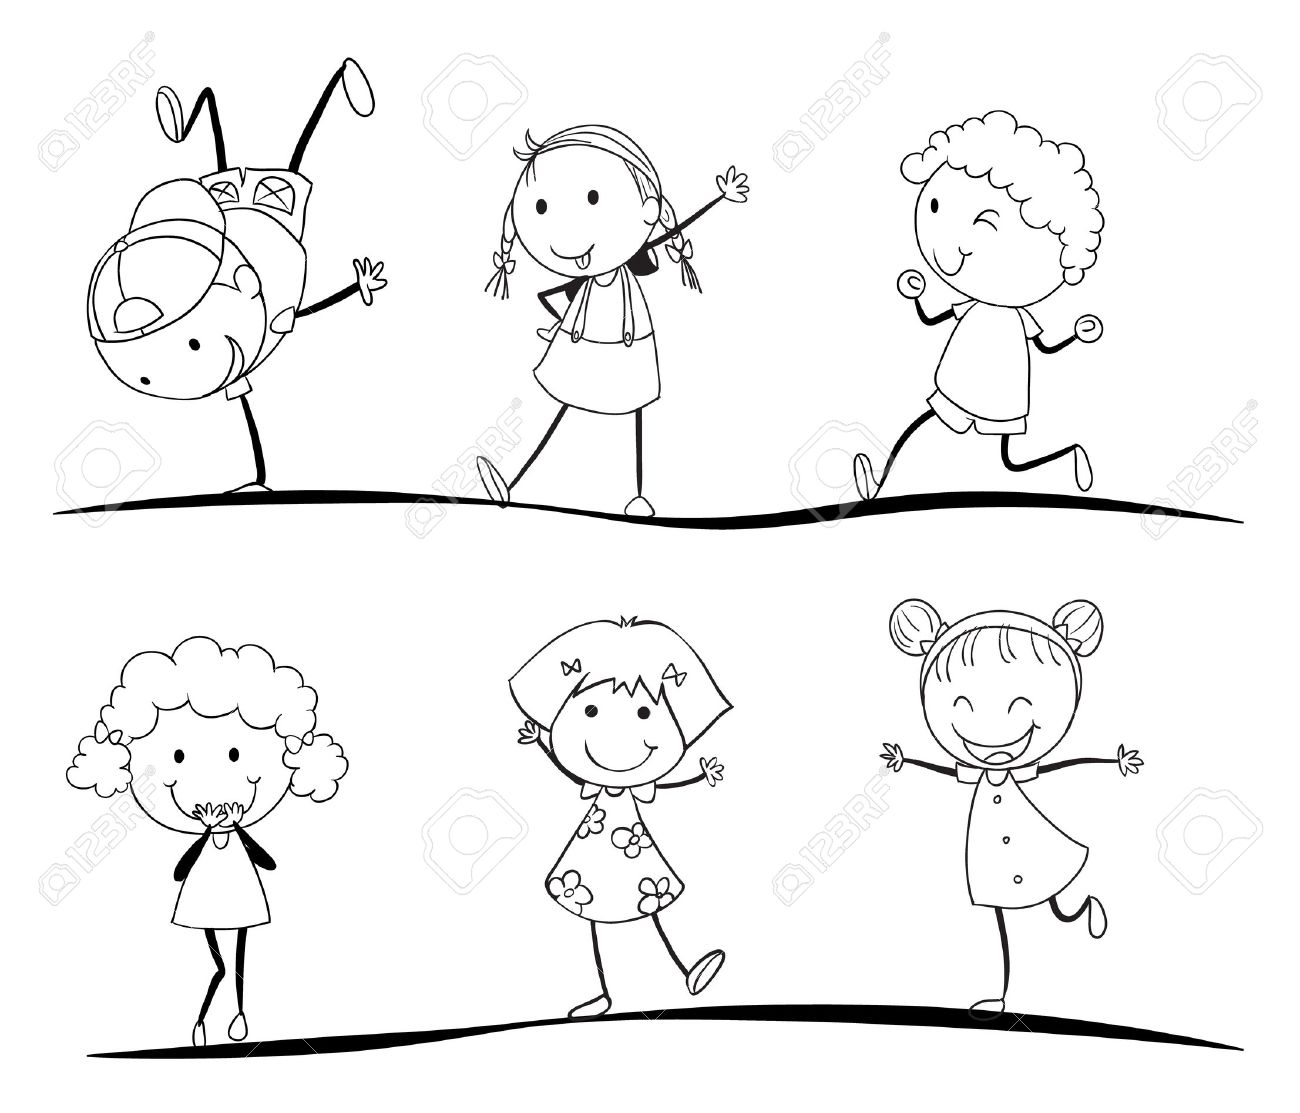 vector kids activity sketches on a white background - Kids Sketches